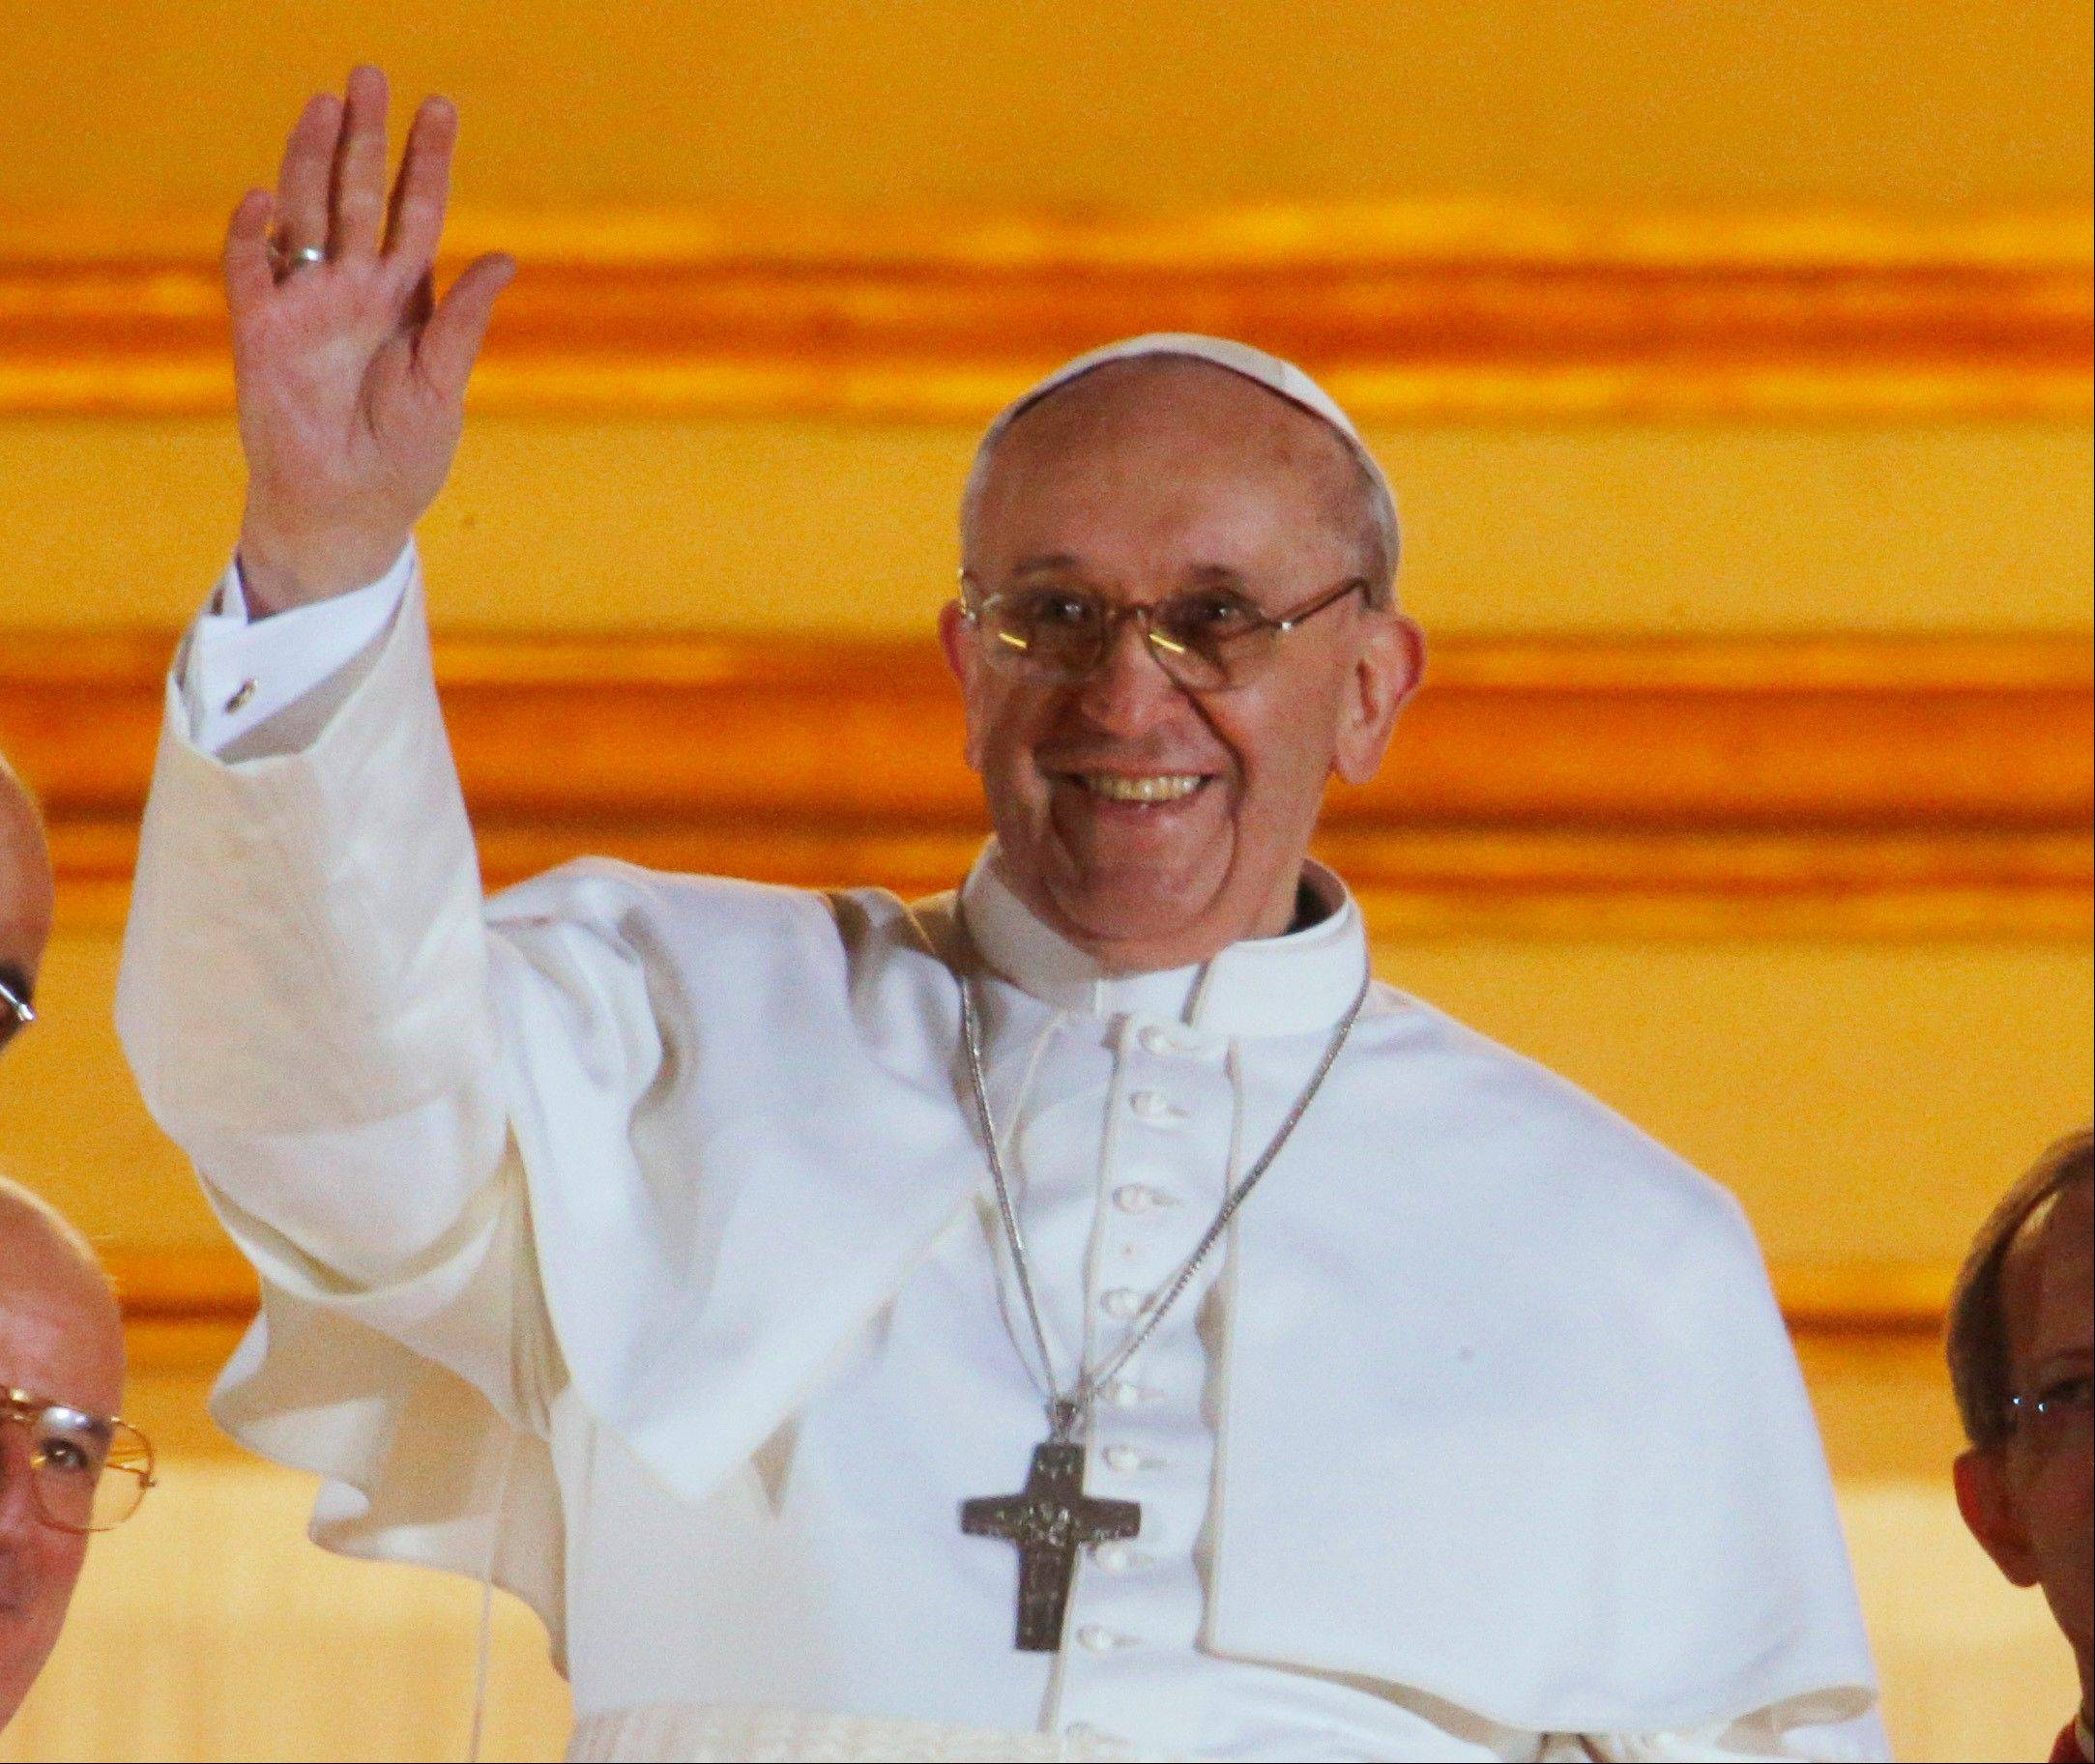 Pope Francis waves to the crowd Wednesday from the central balcony of St. Peter's Basilica at the Vatican.